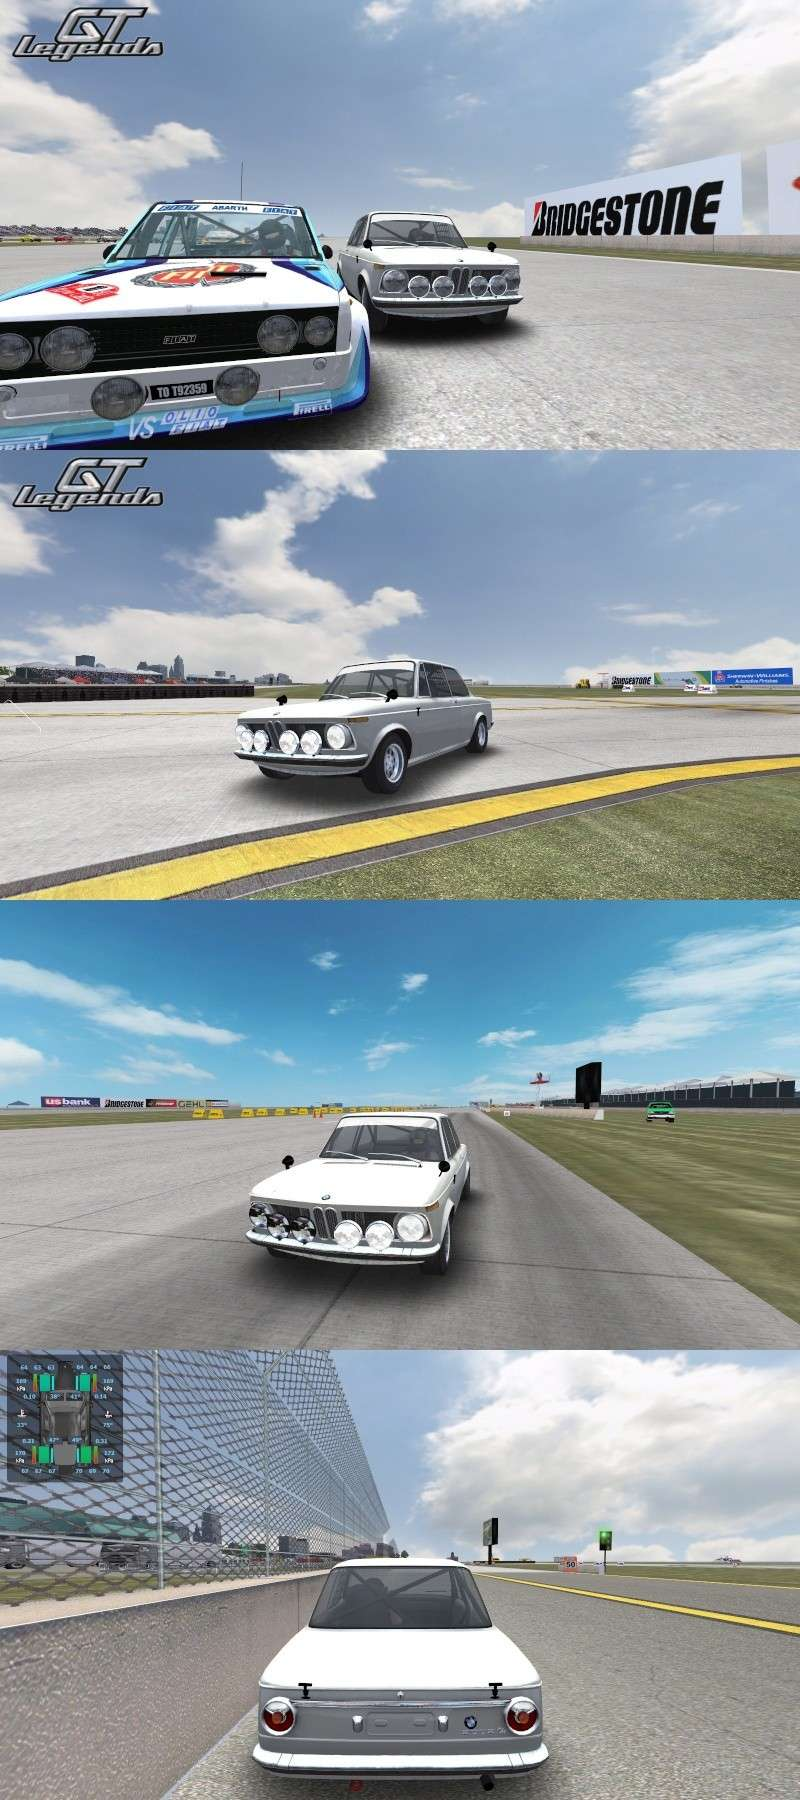 BMW 2002 from the Retro Expansion Pack - Page 3 Untitl10